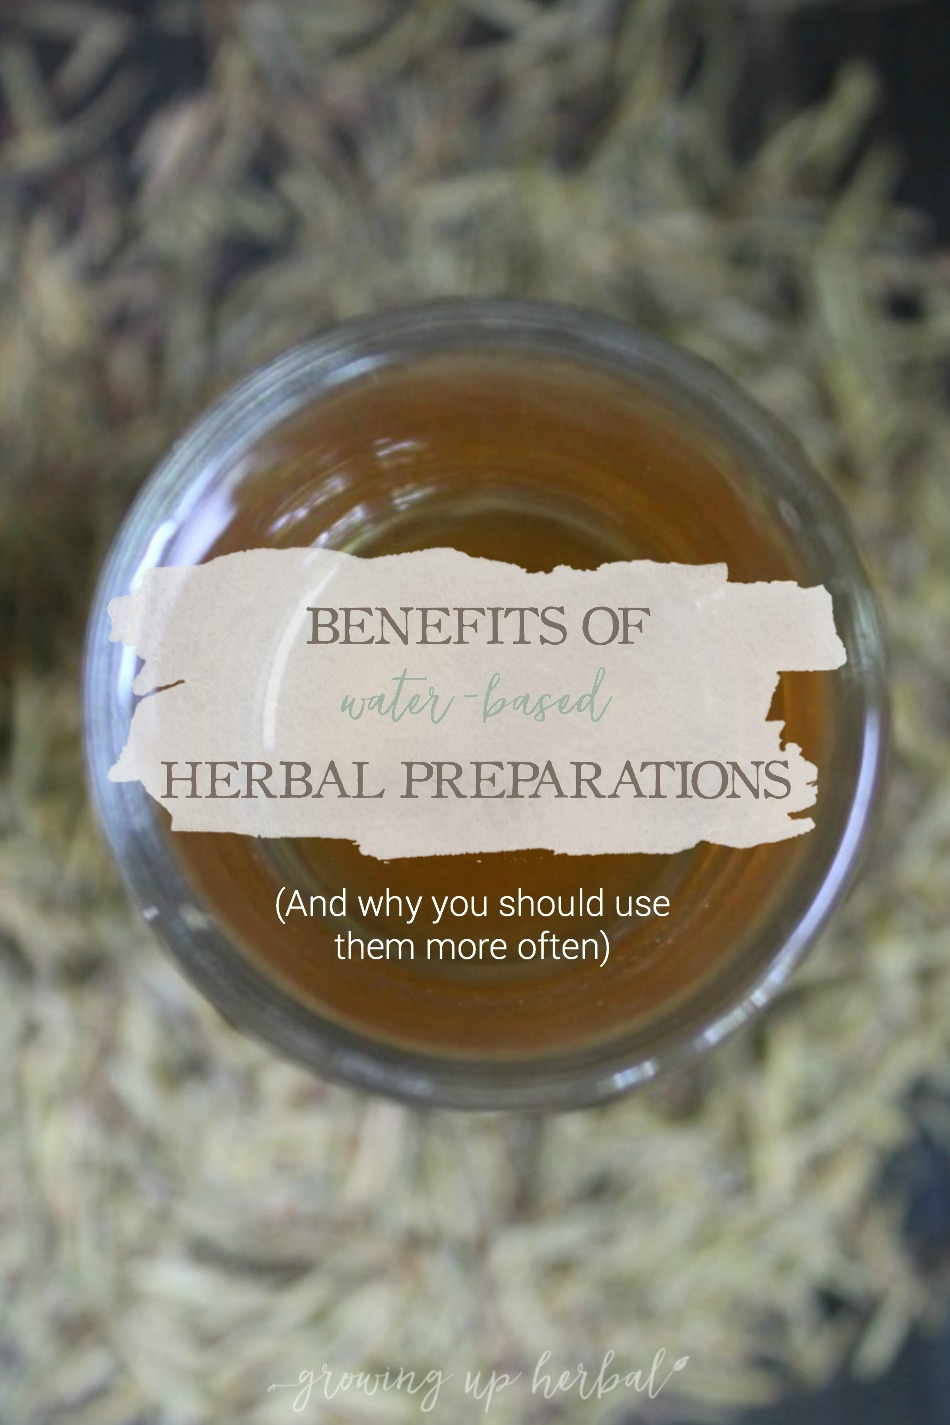 Benefits of Water-Based Herbal Preparations   Growing Up Herbal   Ever wondered what benefits you gain from teas, infusions, decoctions, and other water-based herbal preparations? This post explains it in simple terms!